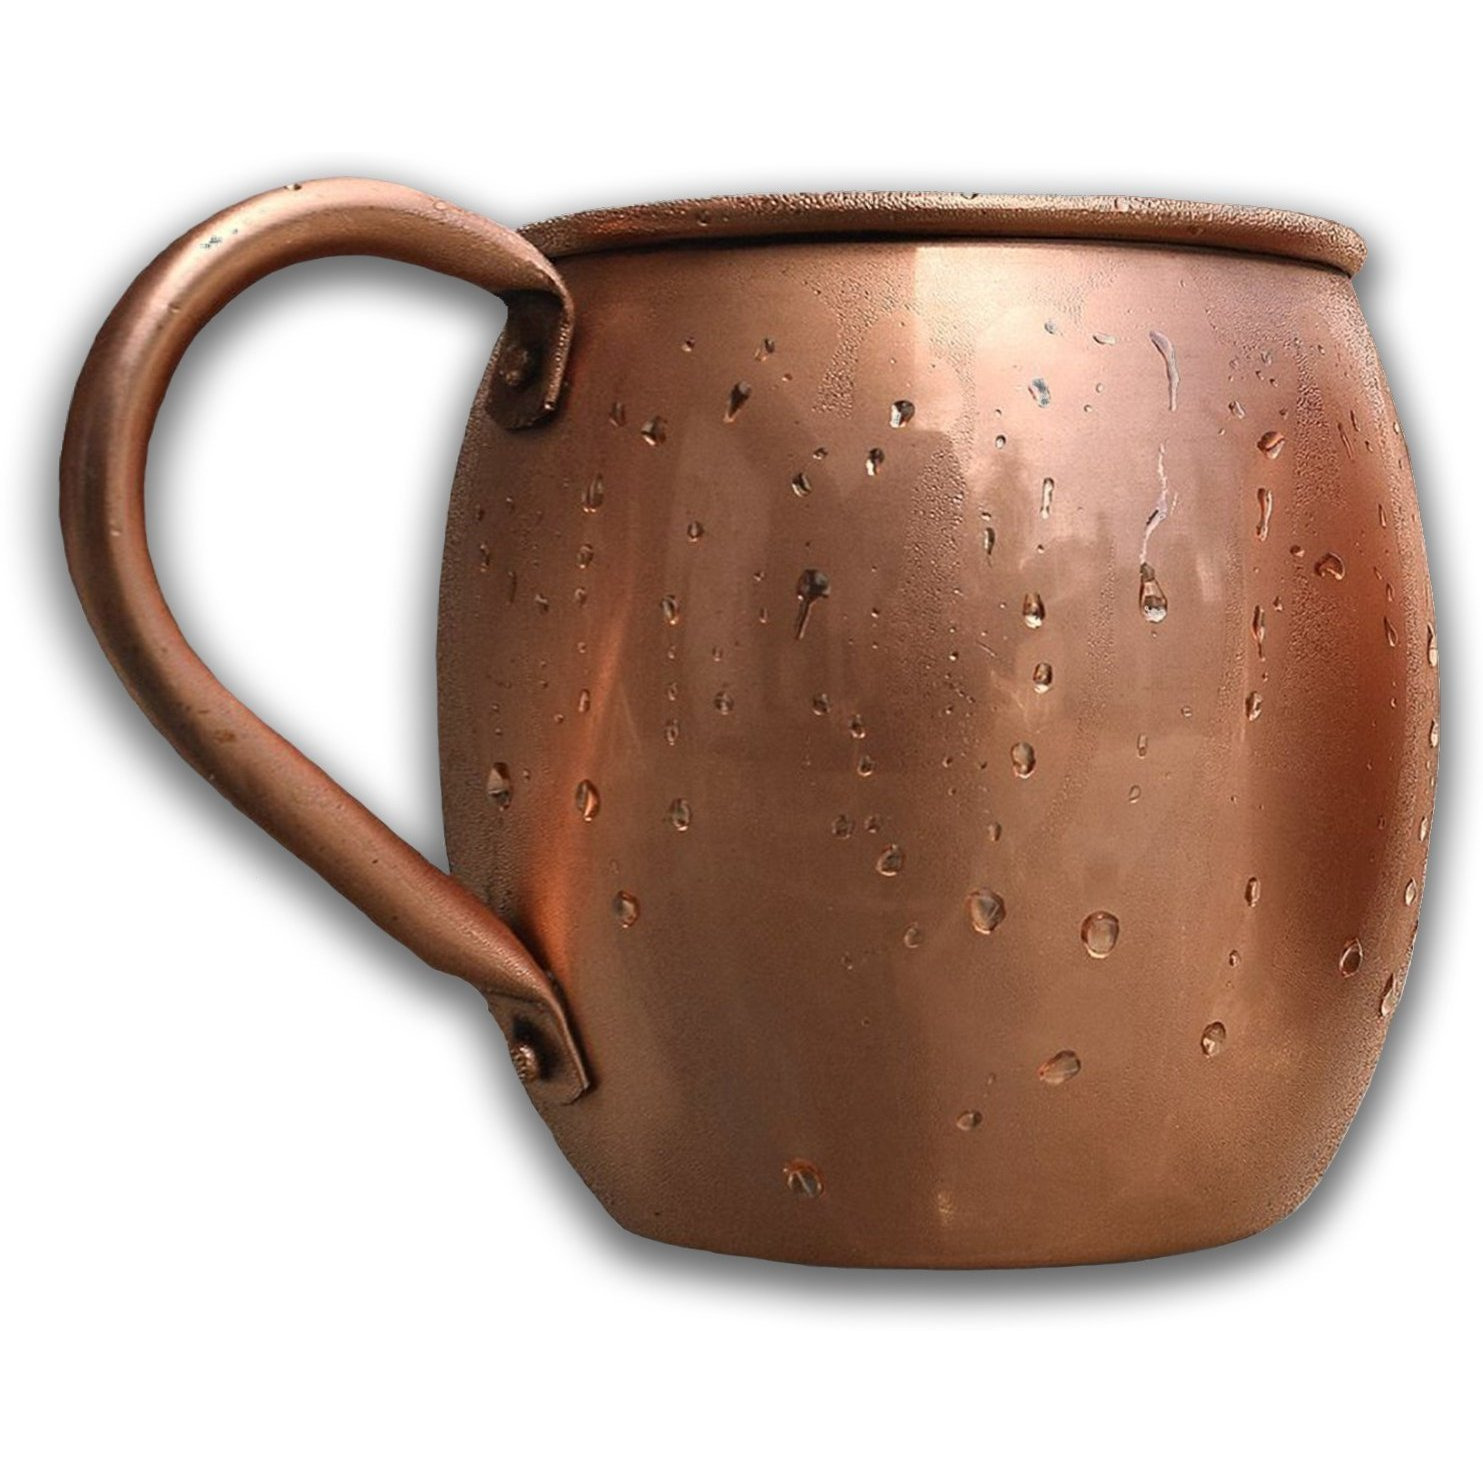 Winmaarc 100% Pure Copper Solid Copper Moscow Mule Mug 16 OZ